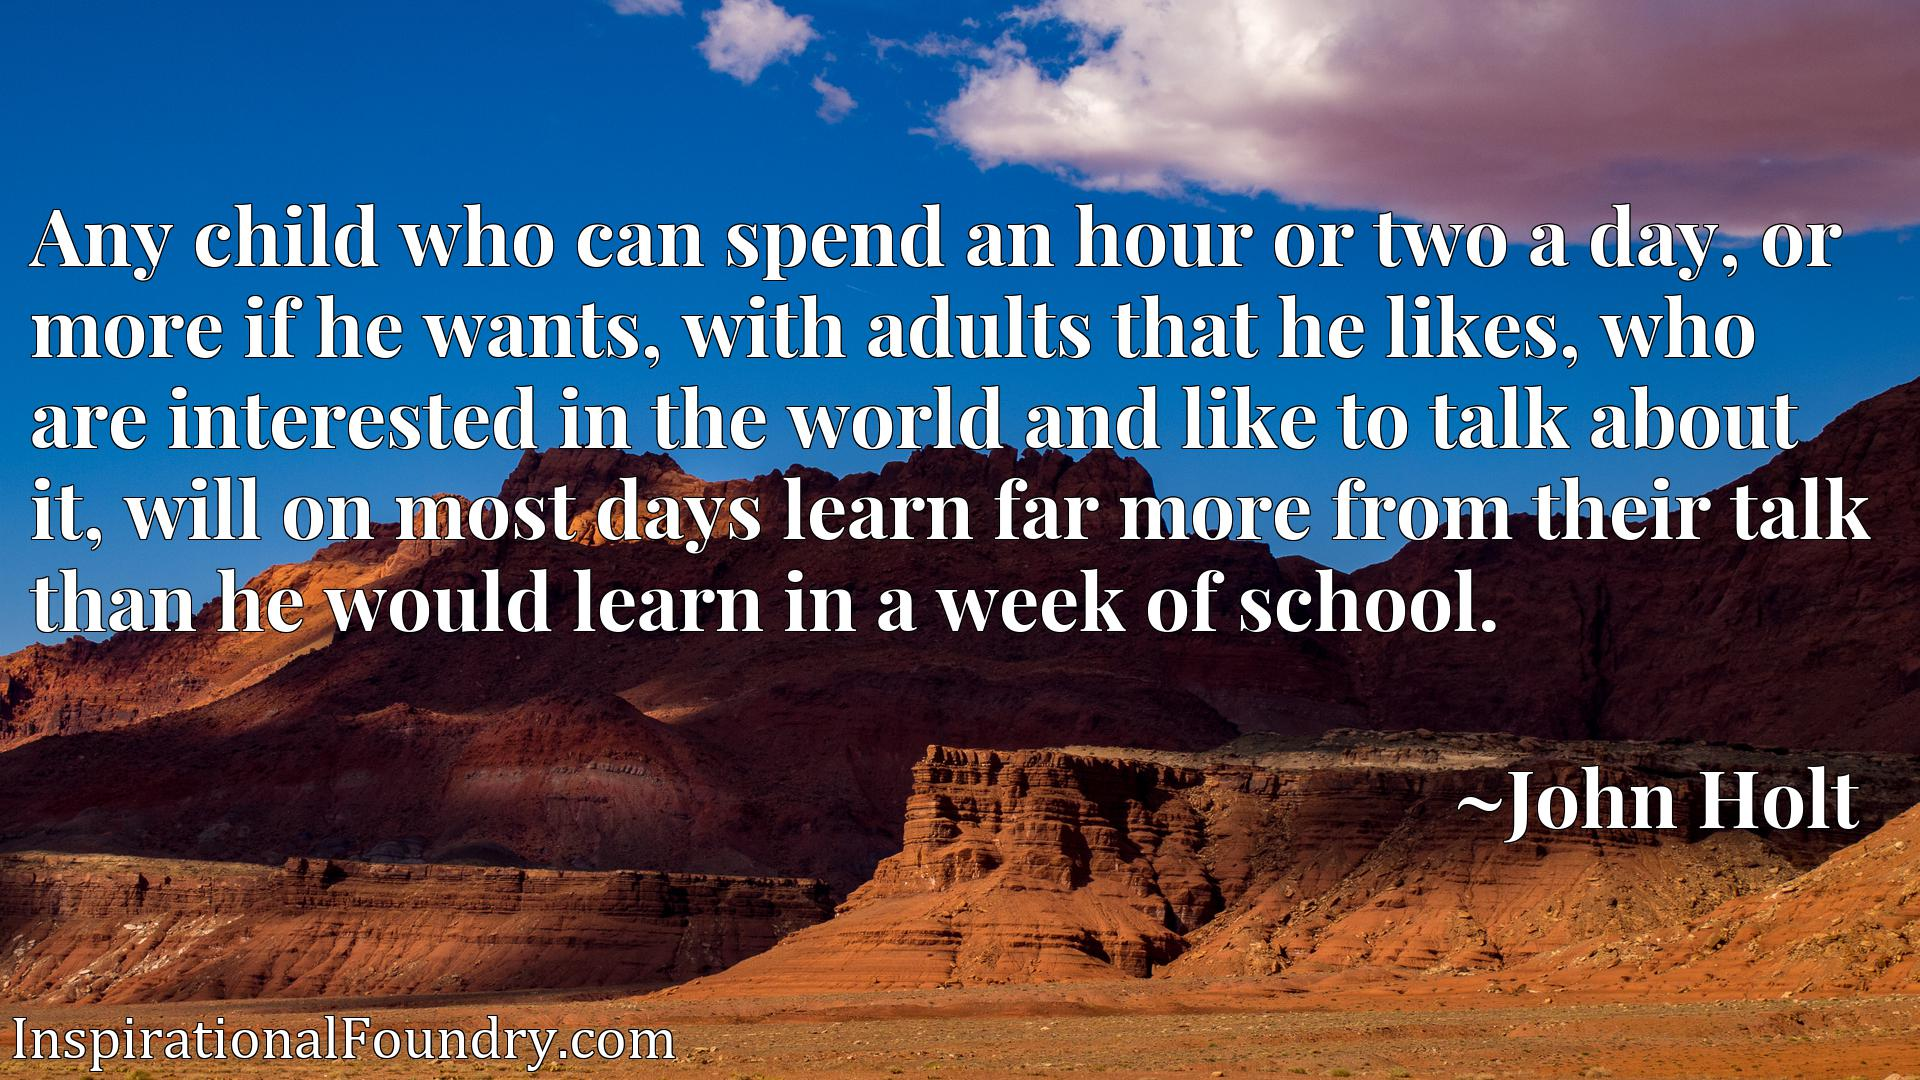 Any child who can spend an hour or two a day, or more if he wants, with adults that he likes, who are interested in the world and like to talk about it, will on most days learn far more from their talk than he would learn in a week of school.